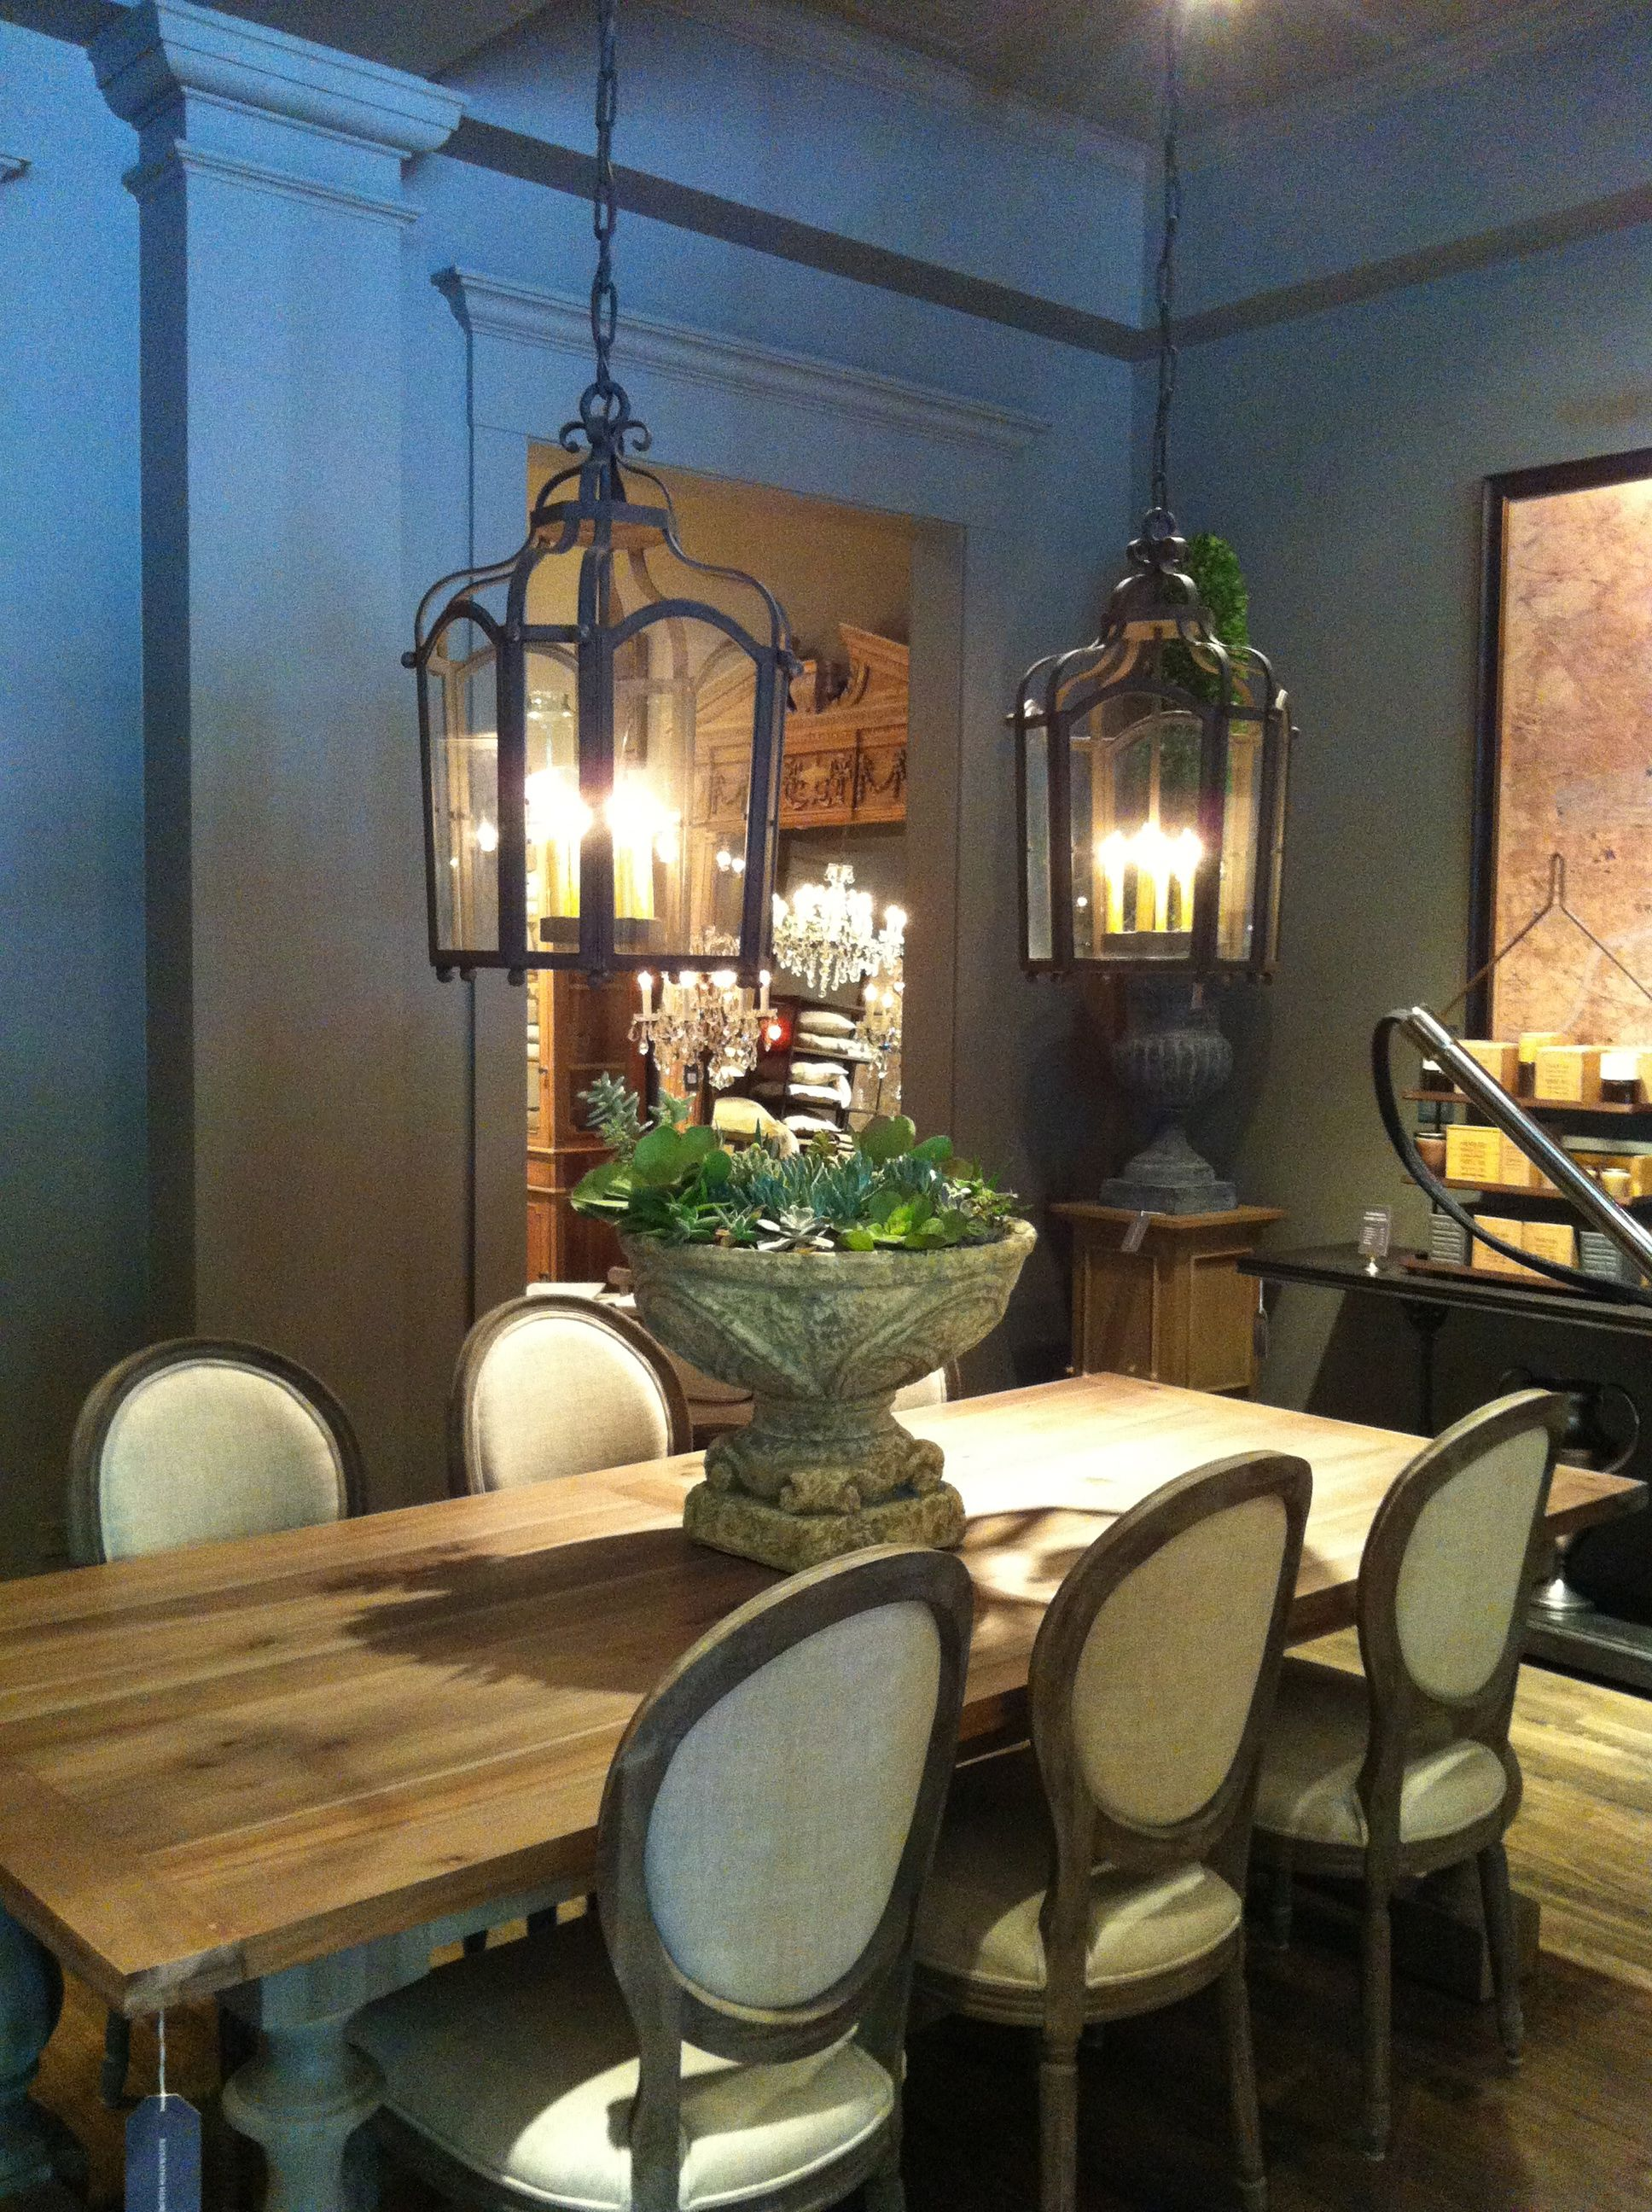 I Love The Lanterns Over The Table Restoration Hardware Dining Room Originally Fro Rustic Dining Room Restoration Hardware Dining Room Beautiful Dining Rooms